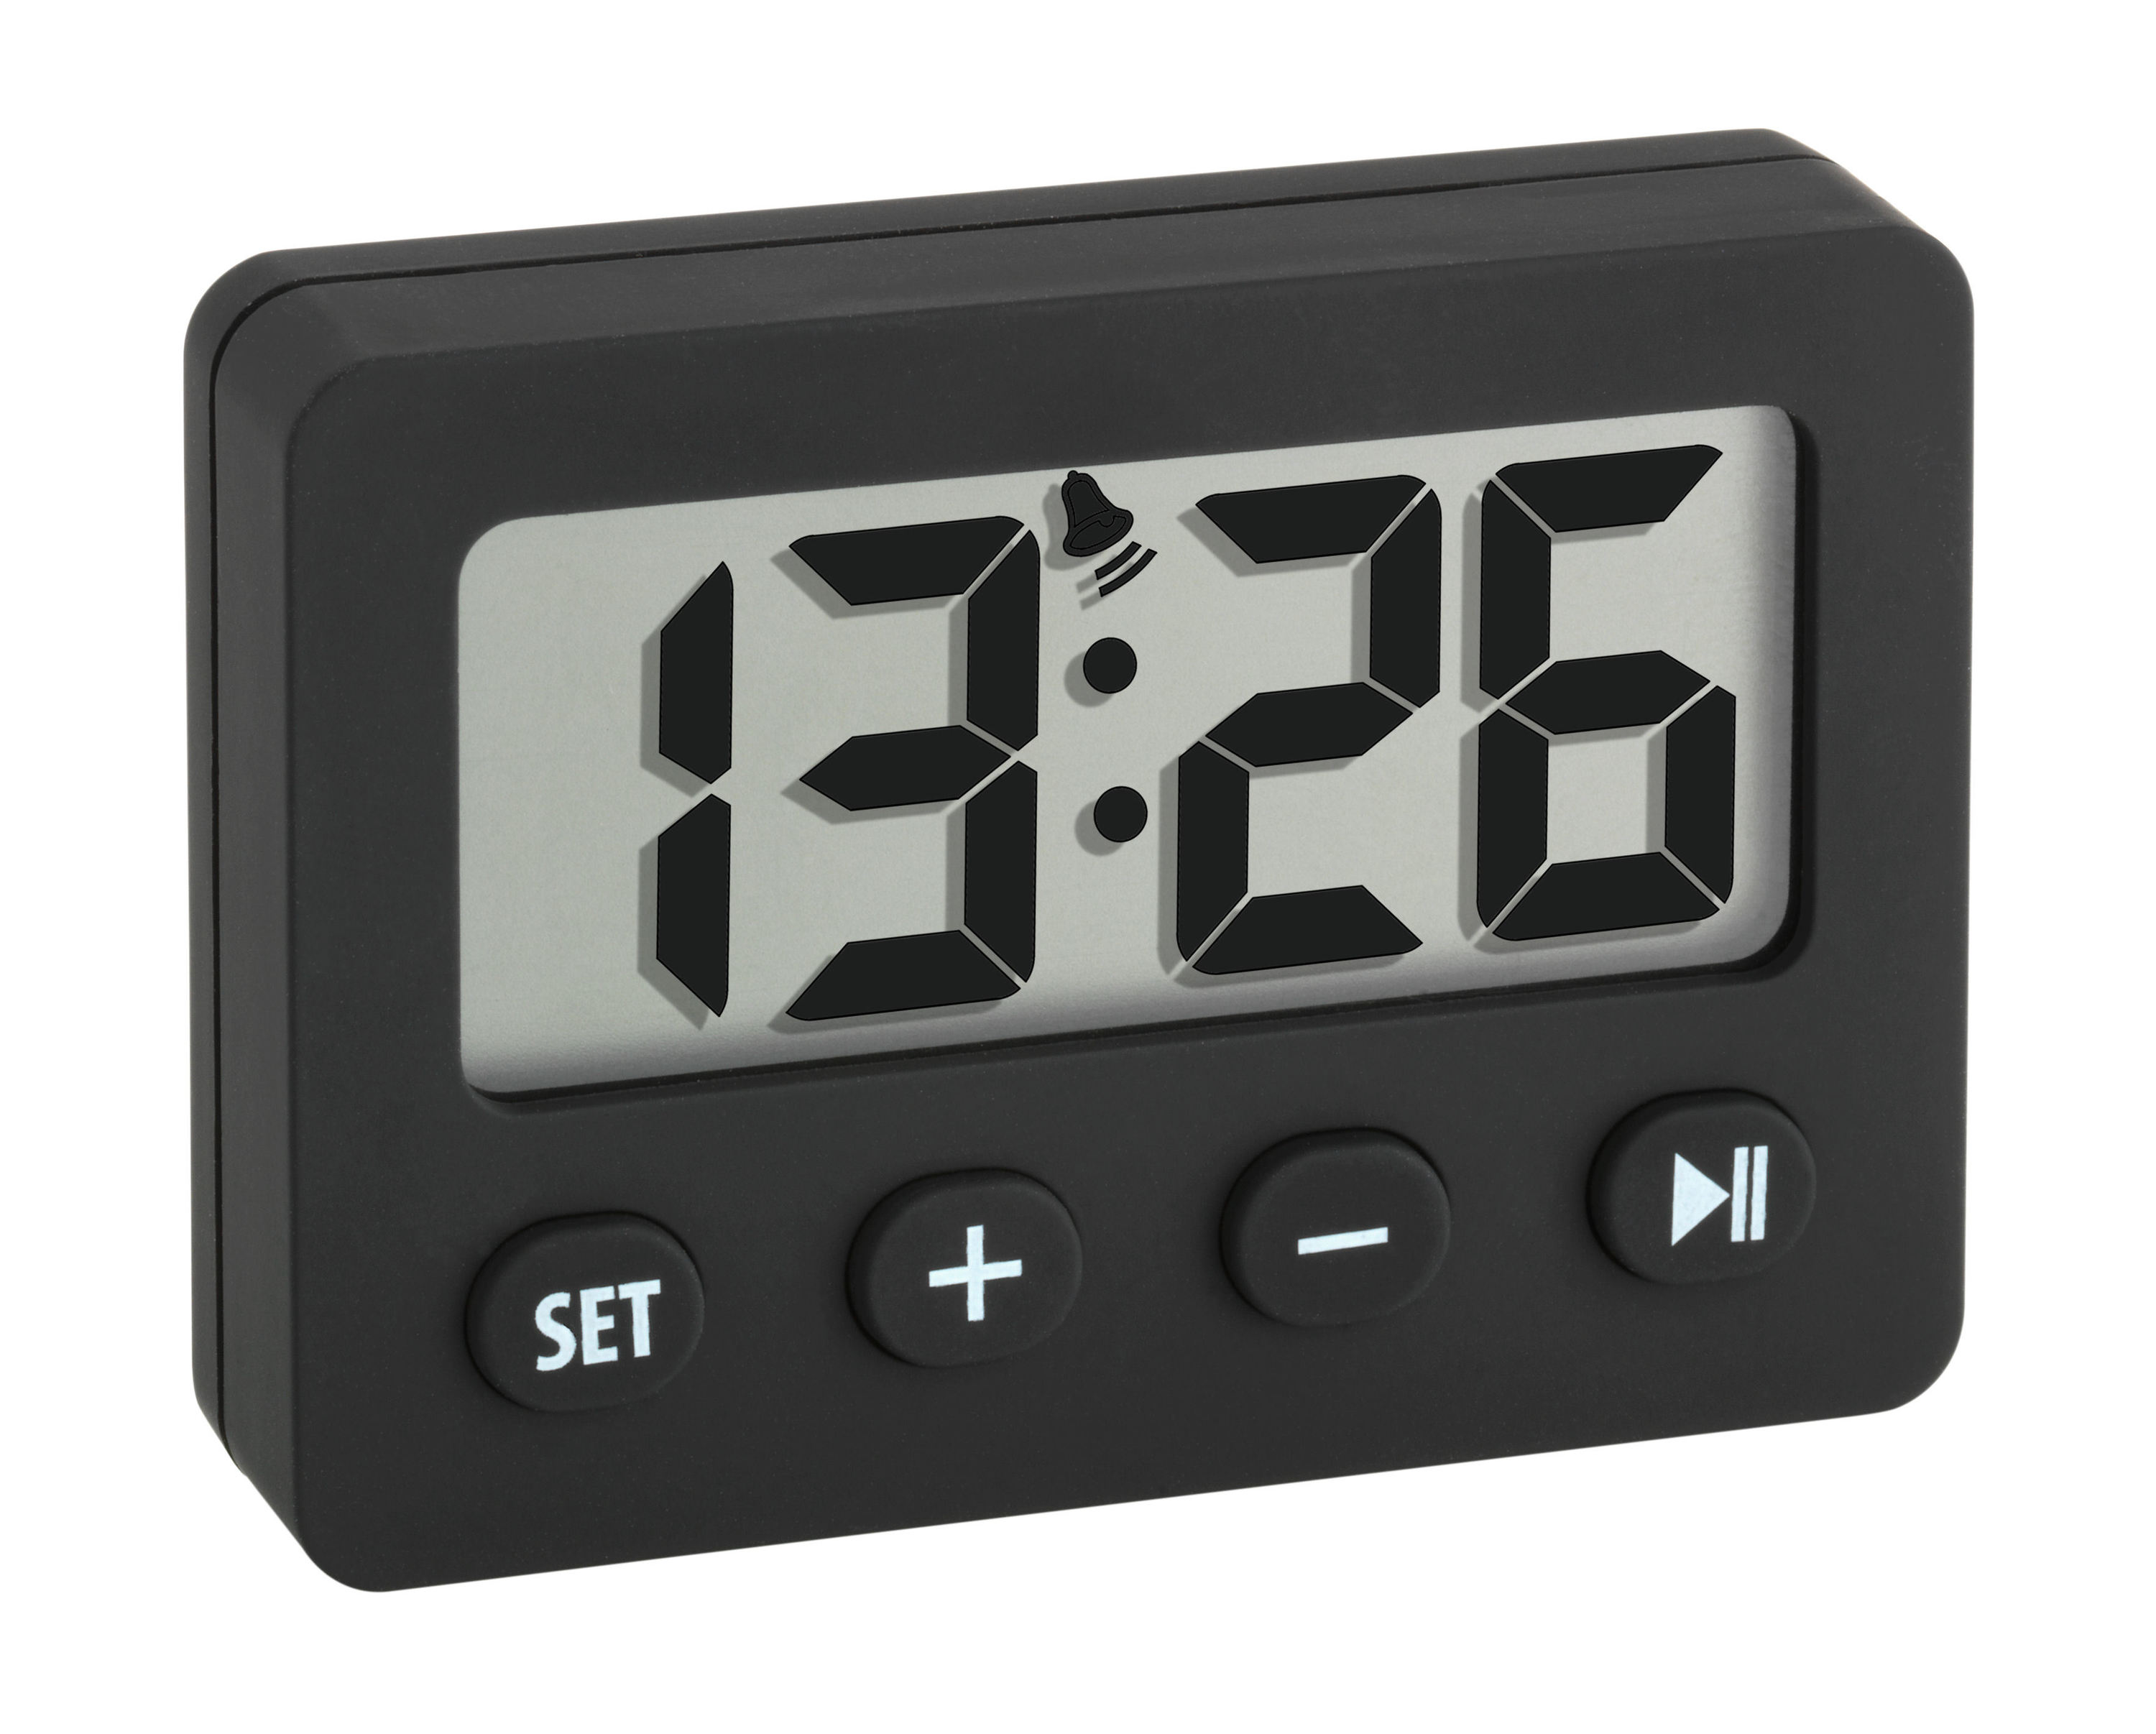 digital alarm clock with timer and stopwatch tfa dostmann